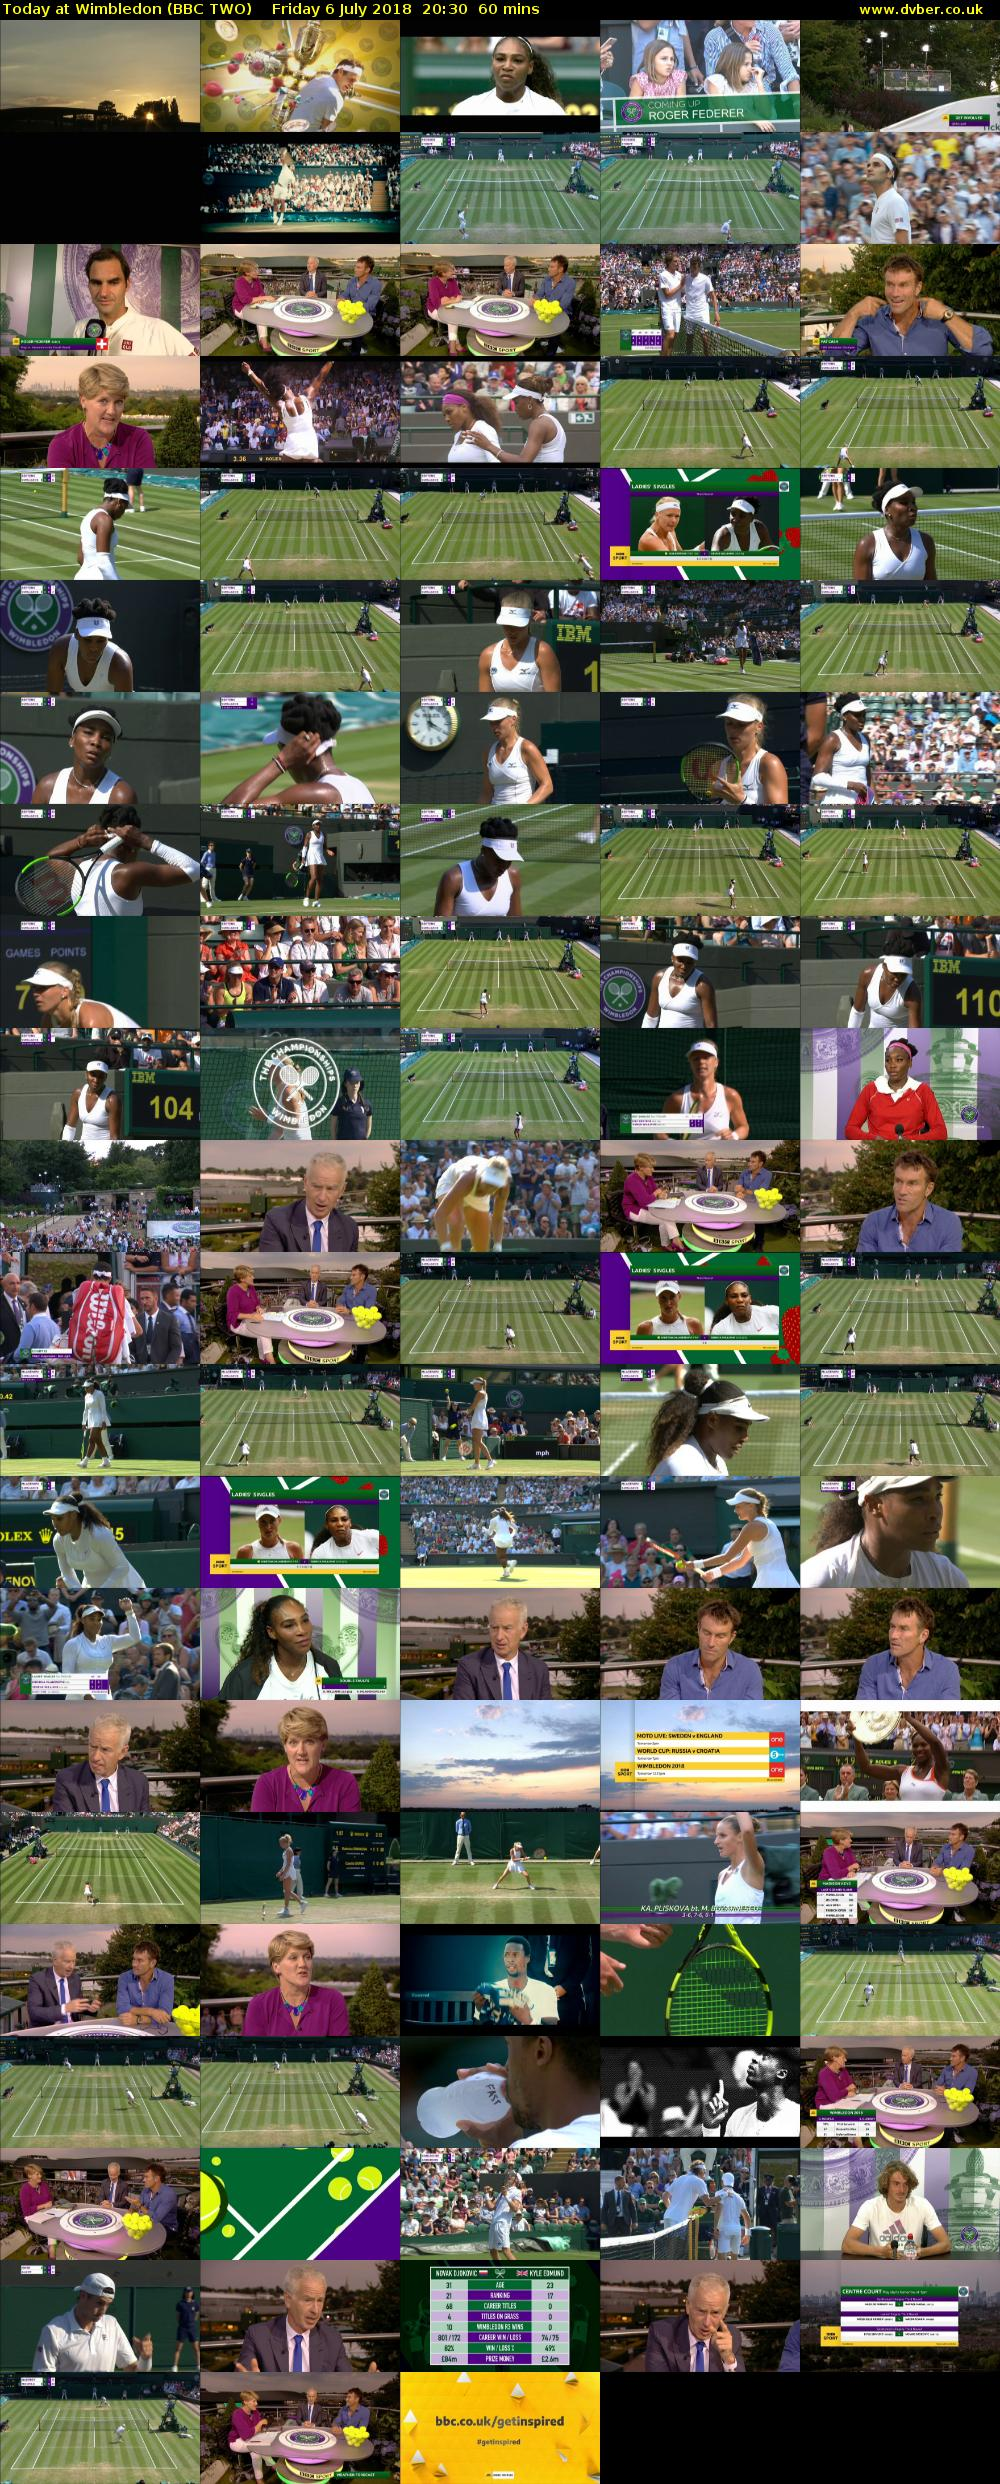 Today at Wimbledon (BBC TWO) Friday 6 July 2018 20:30 - 21:30